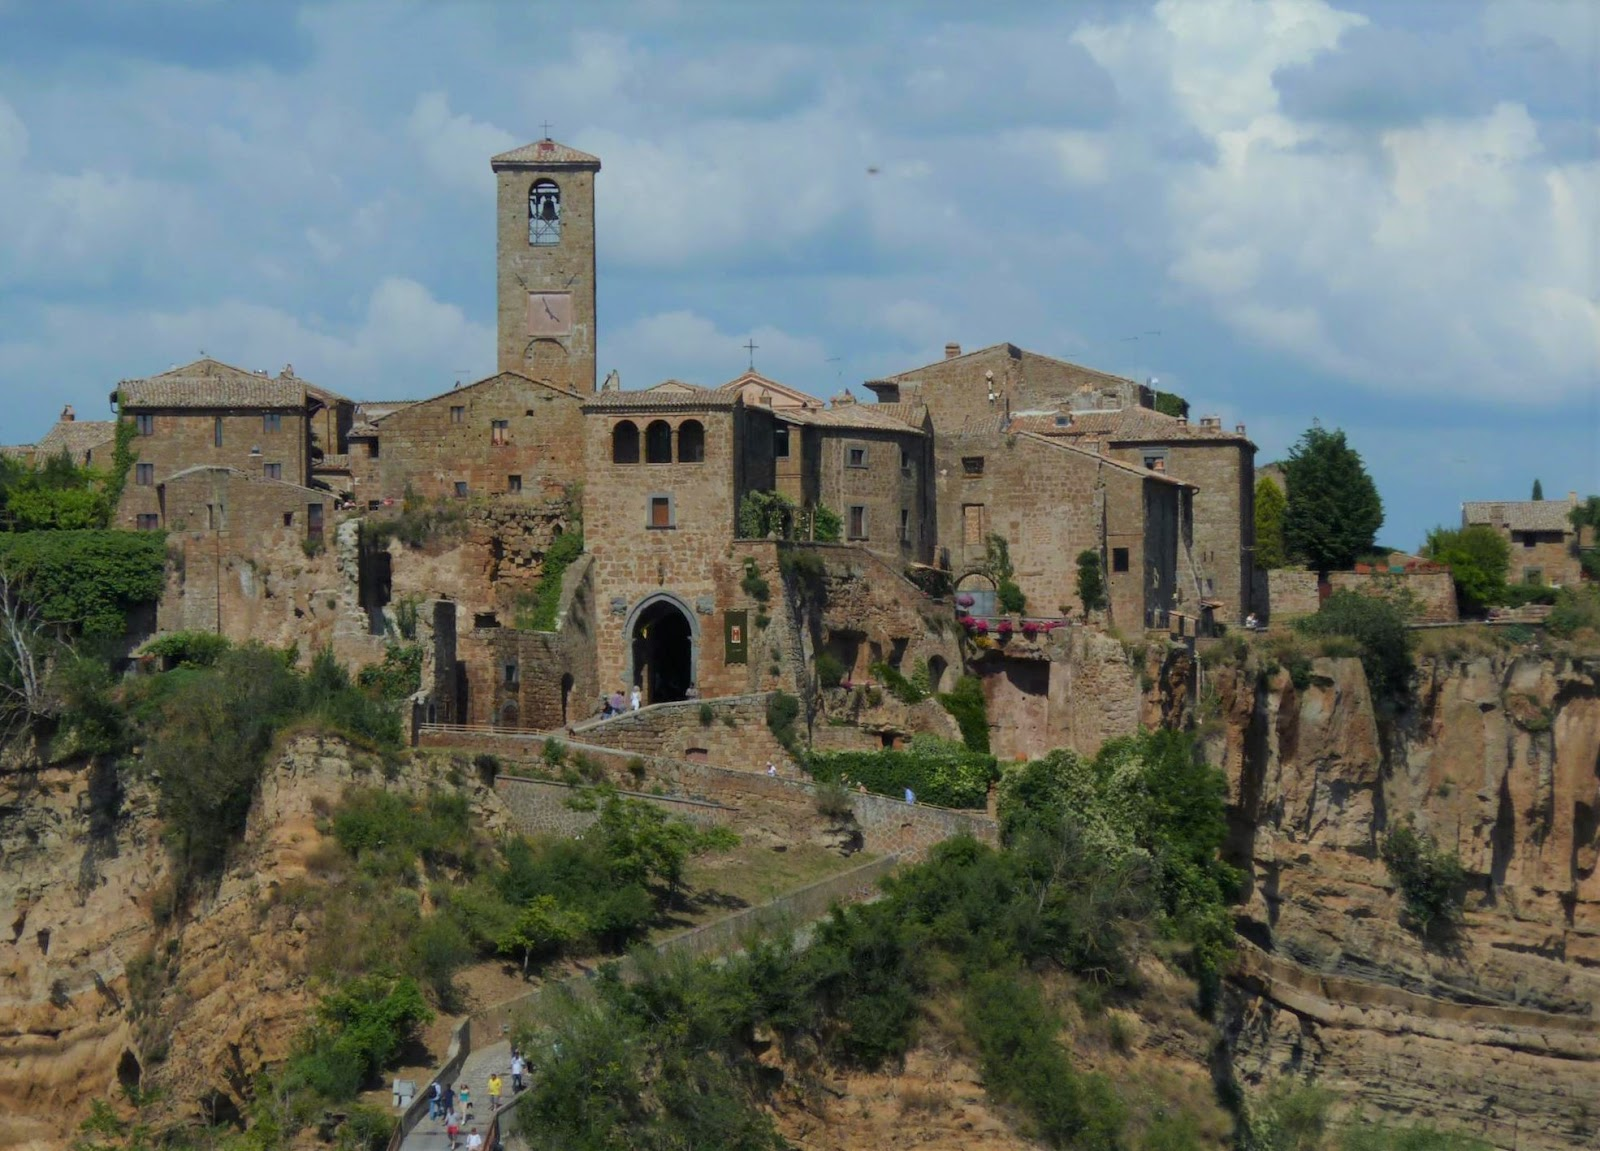 Things to do in Civita